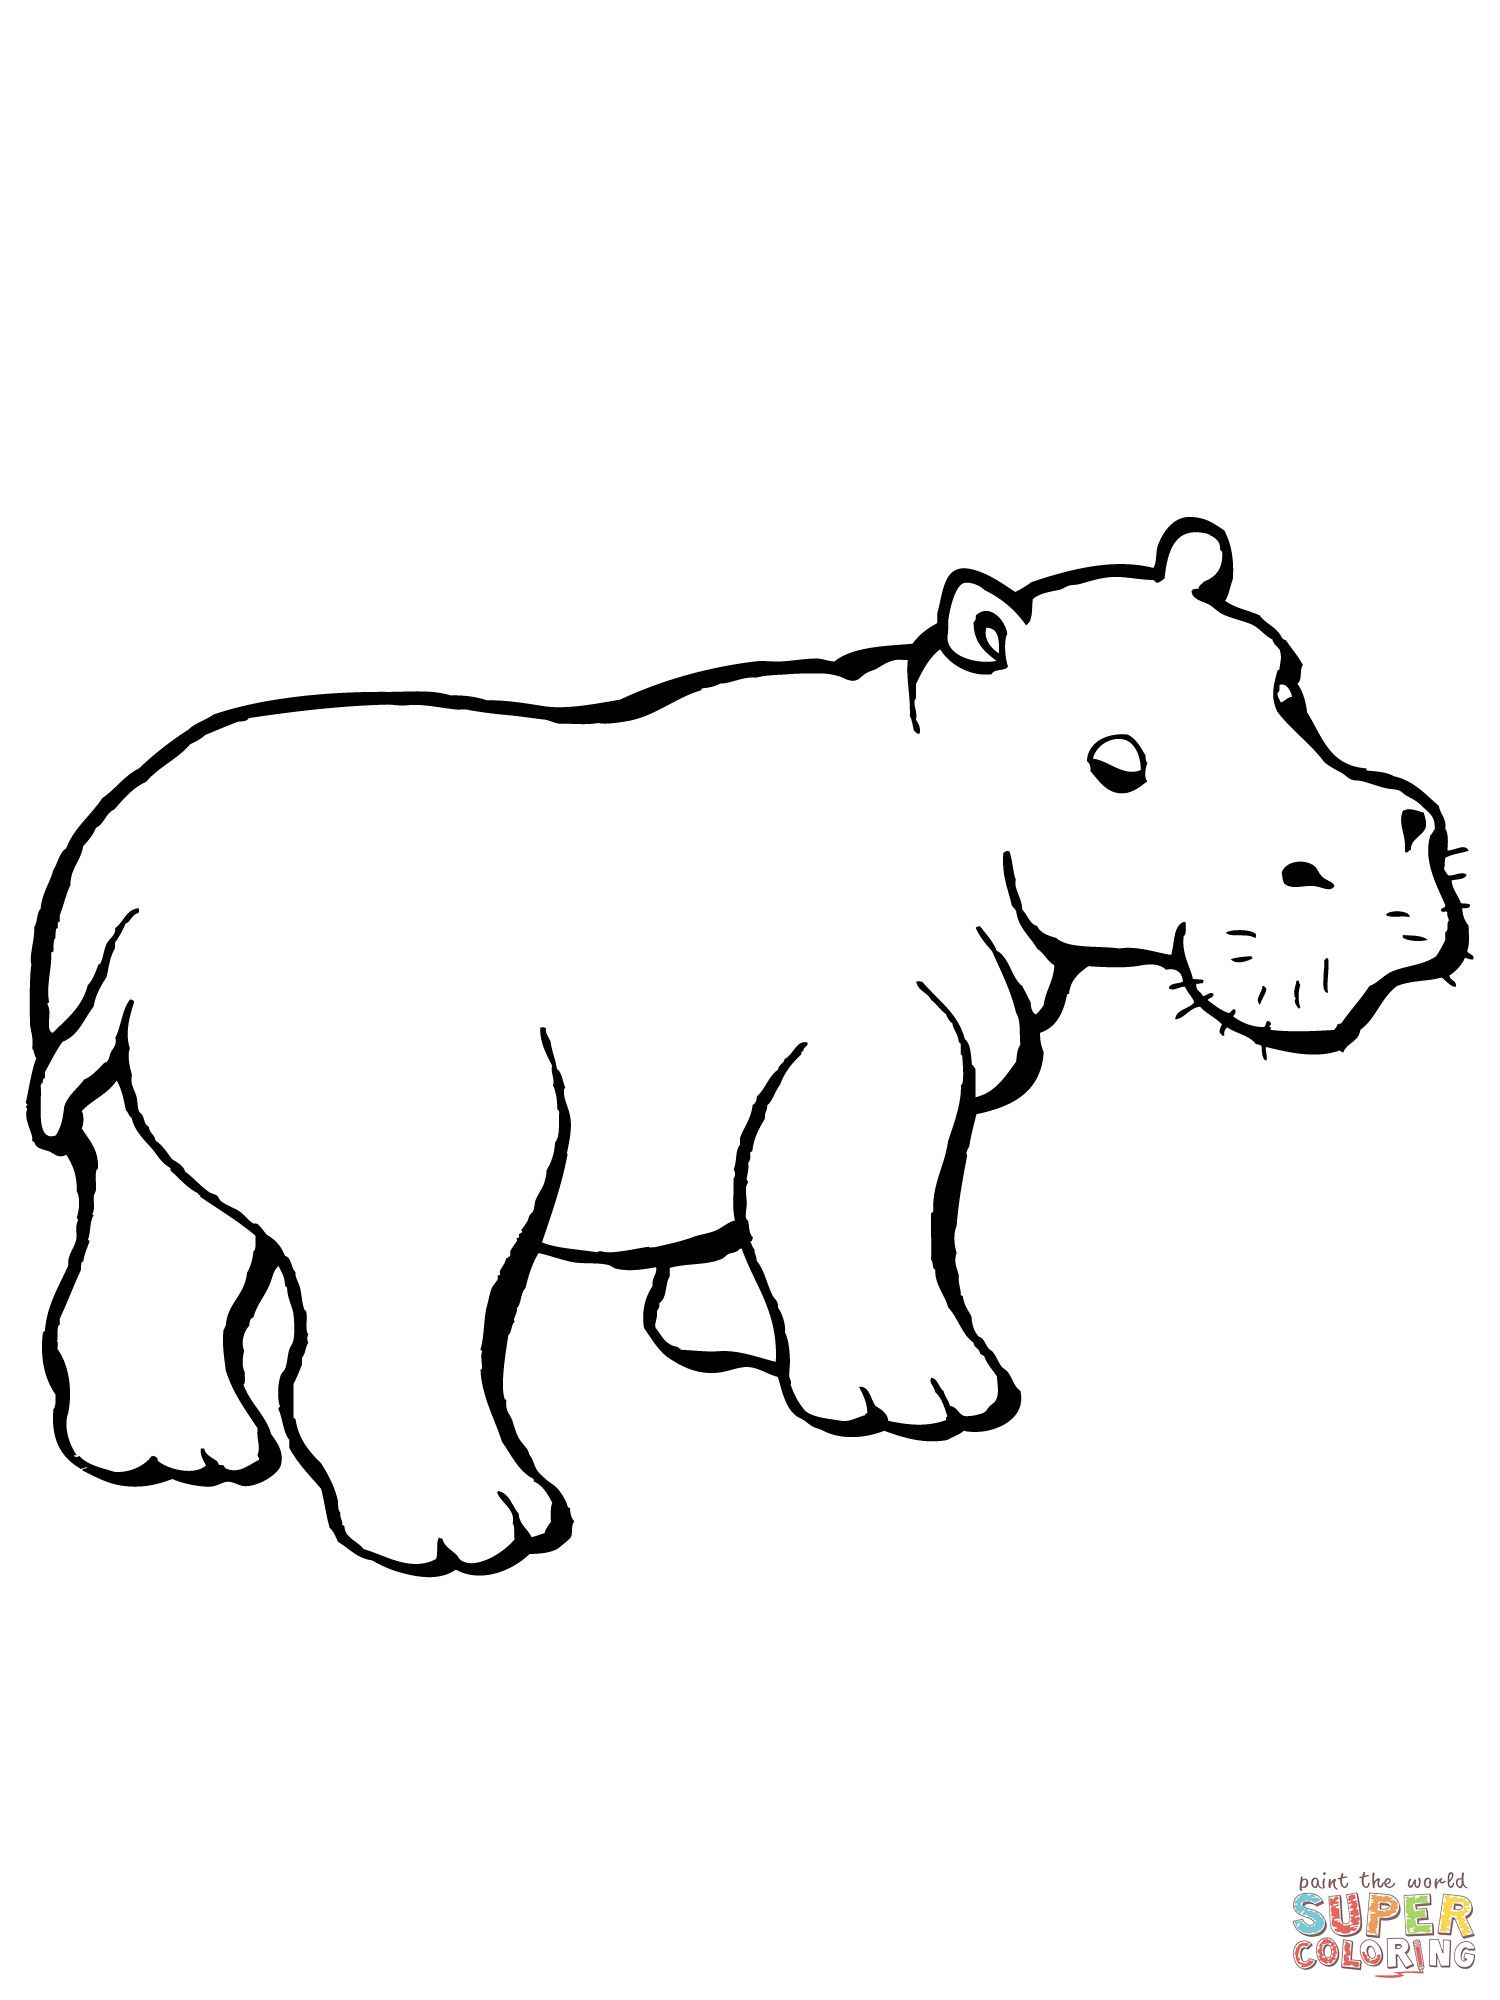 hippo outline drawing hippo outline drawing at paintingvalleycom explore outline drawing hippo